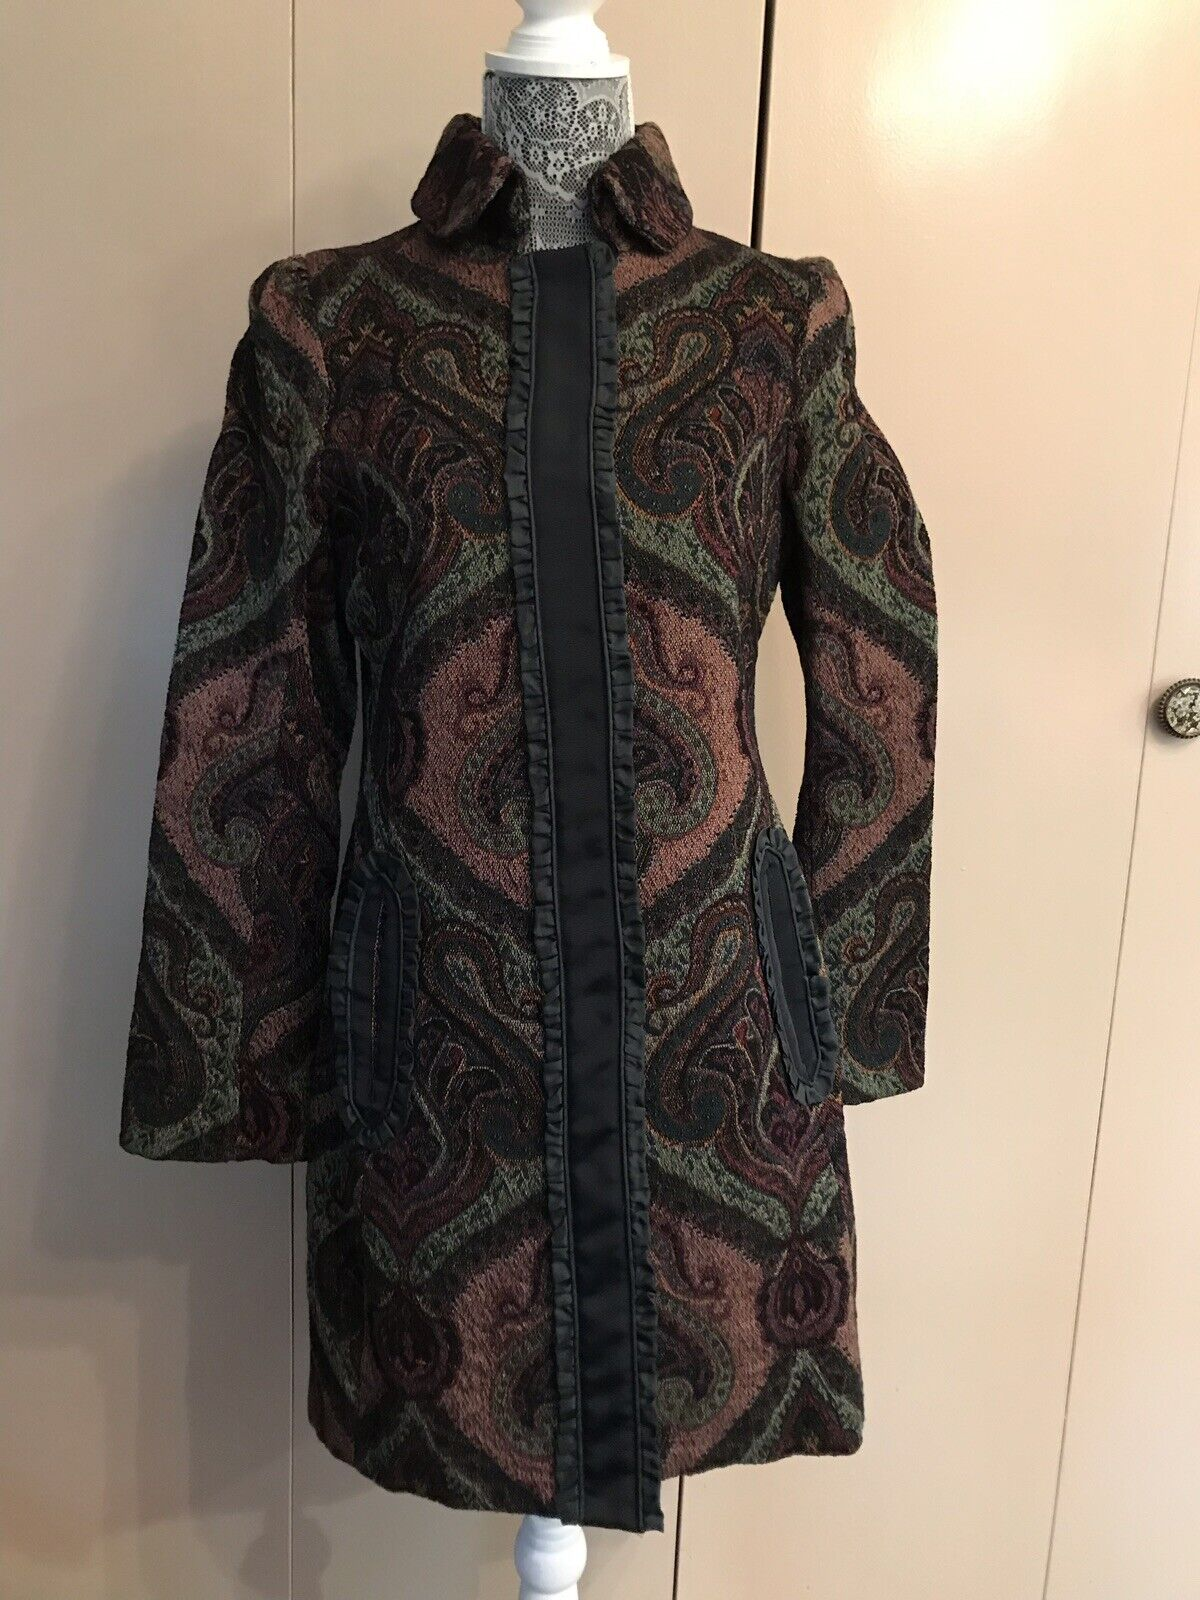 HOSS av Anthropologie Paisley Coat - 38